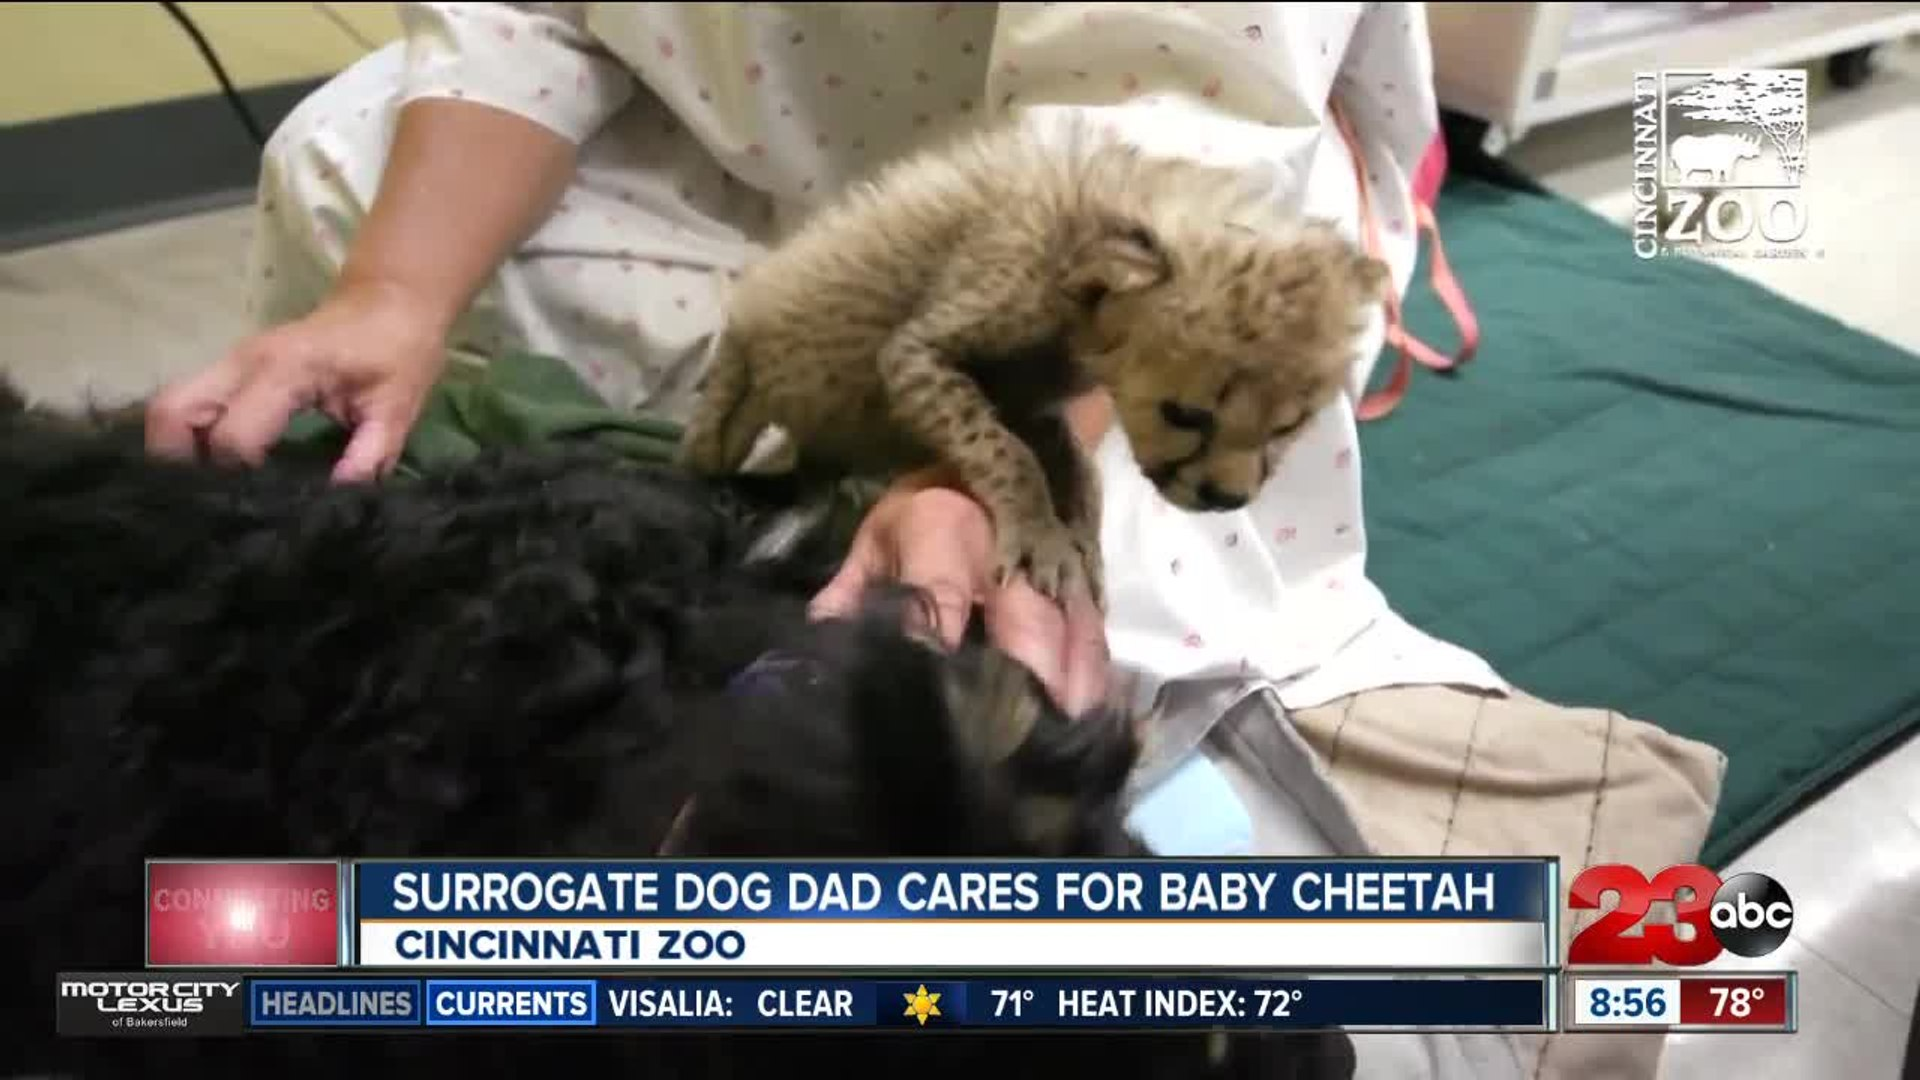 Surrogate dog dad cares for baby cheetah